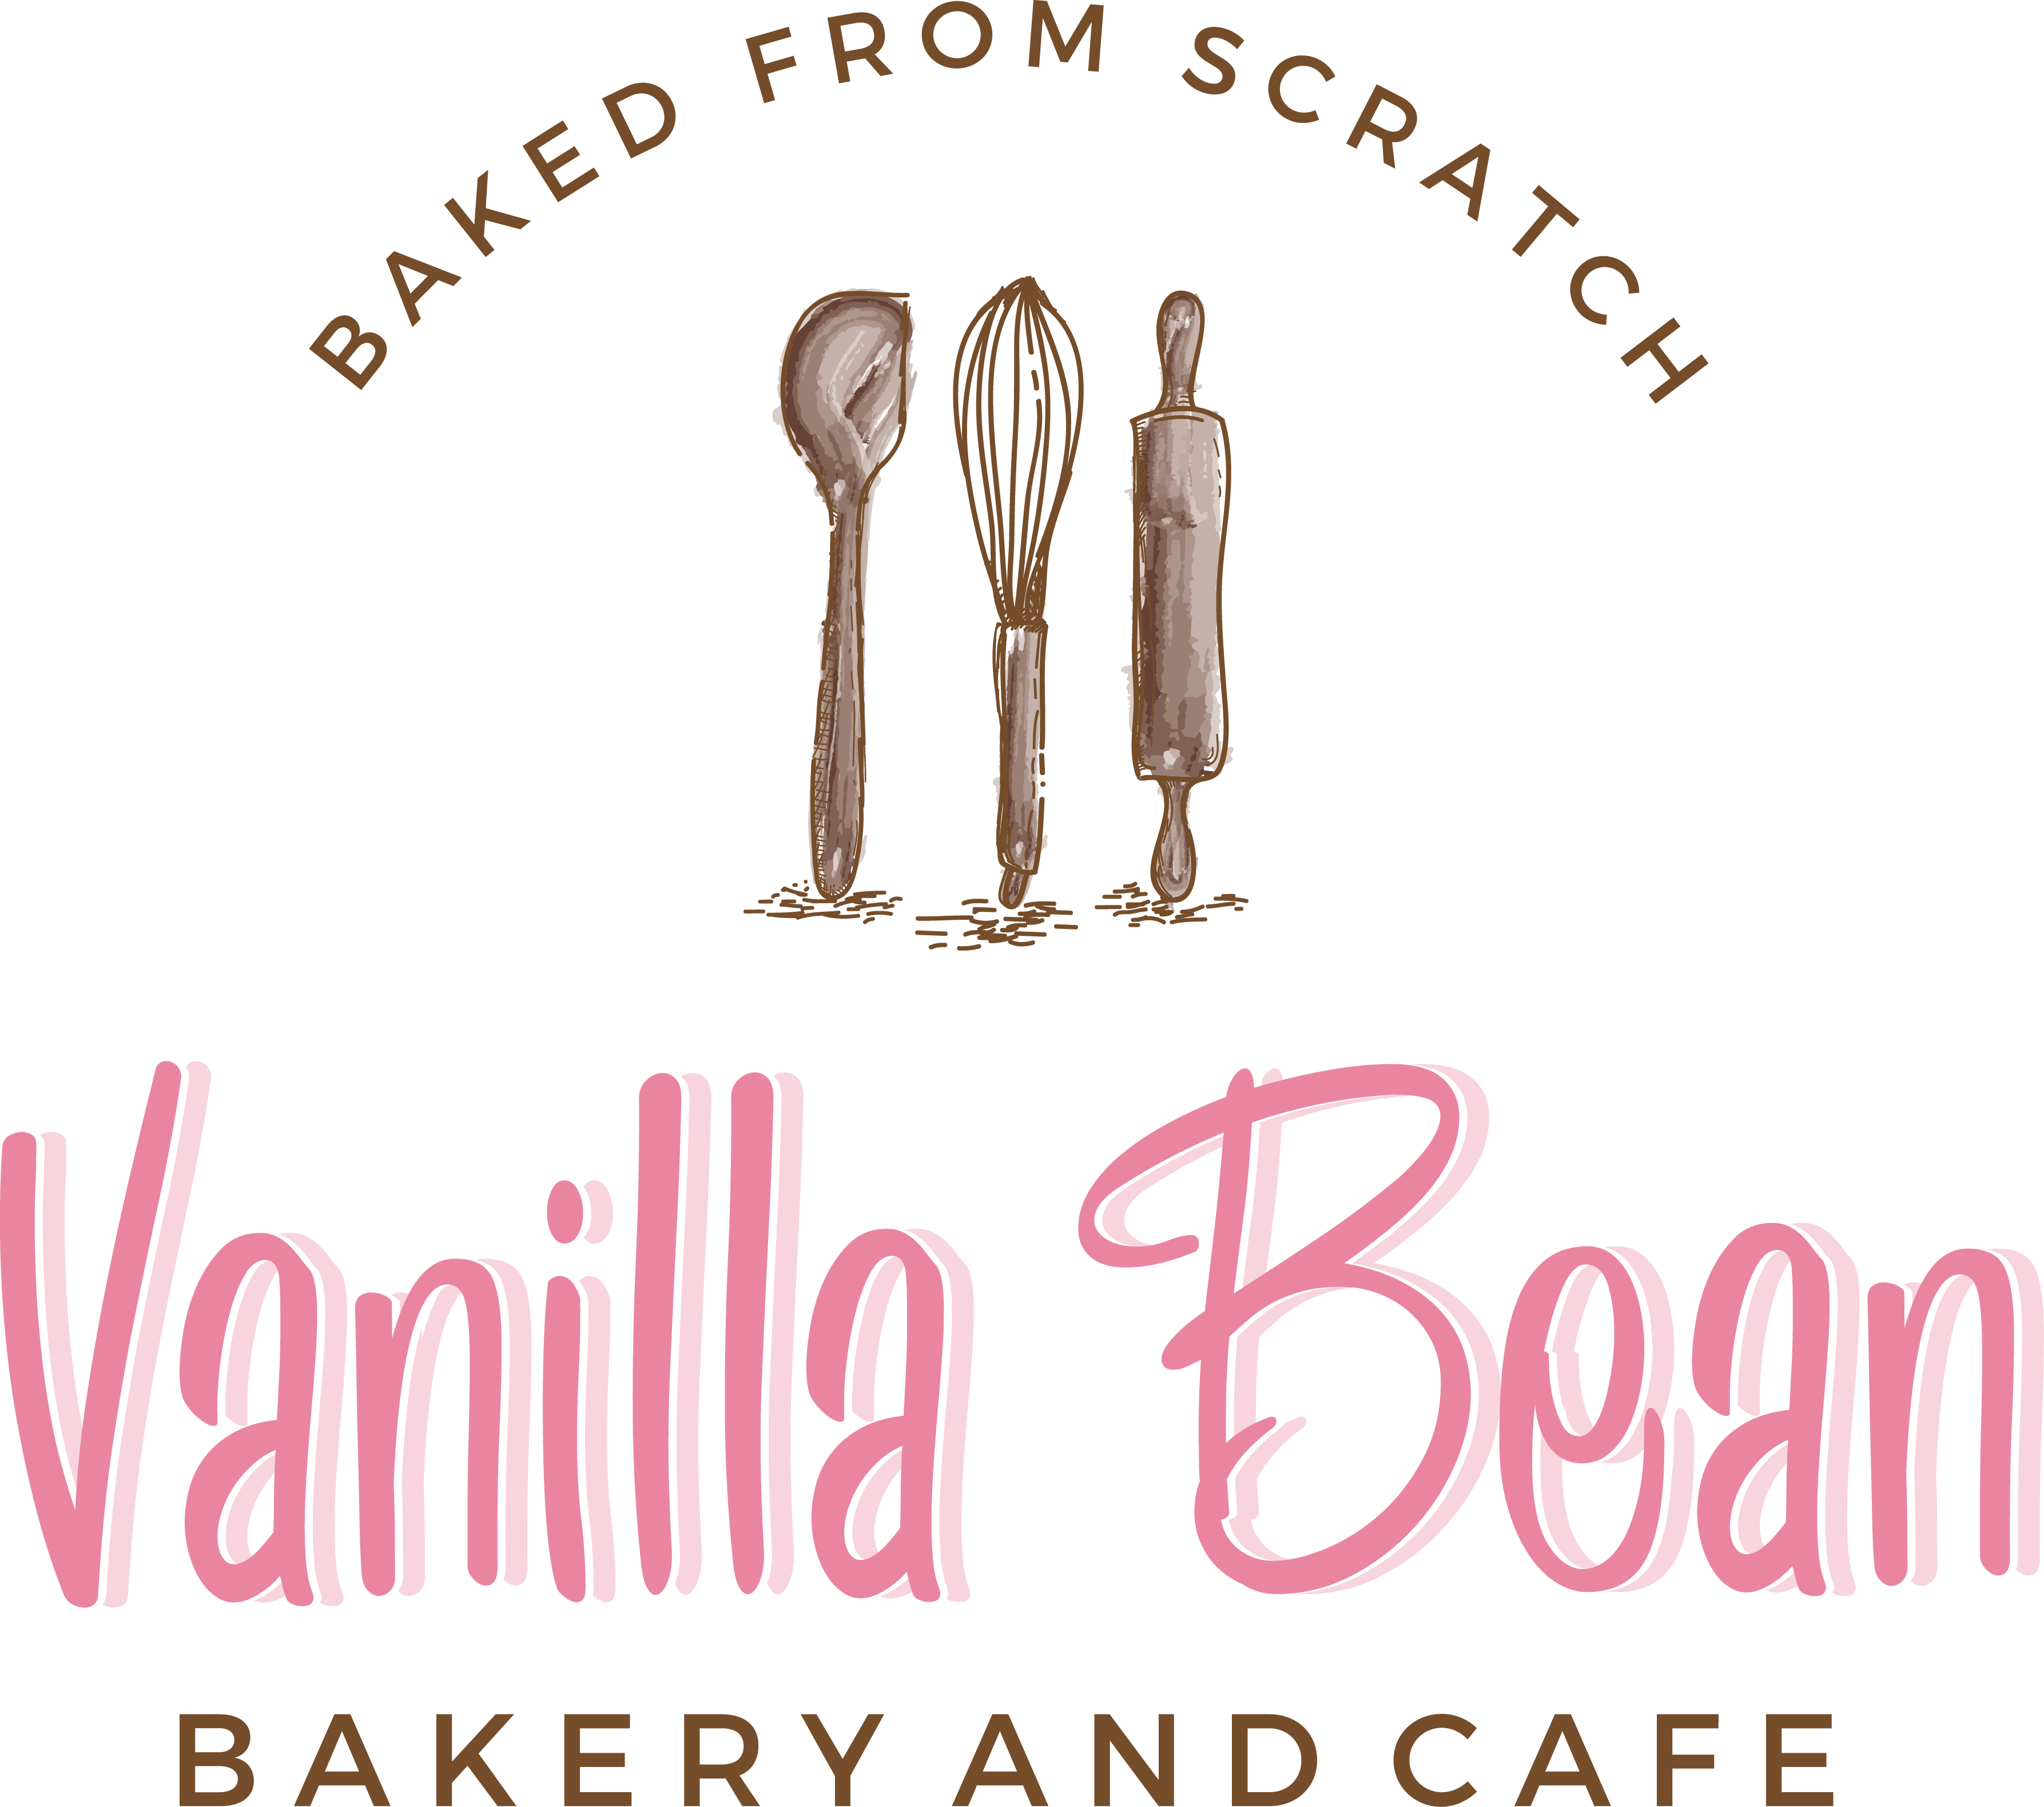 Bakery looking for a great updated logo!